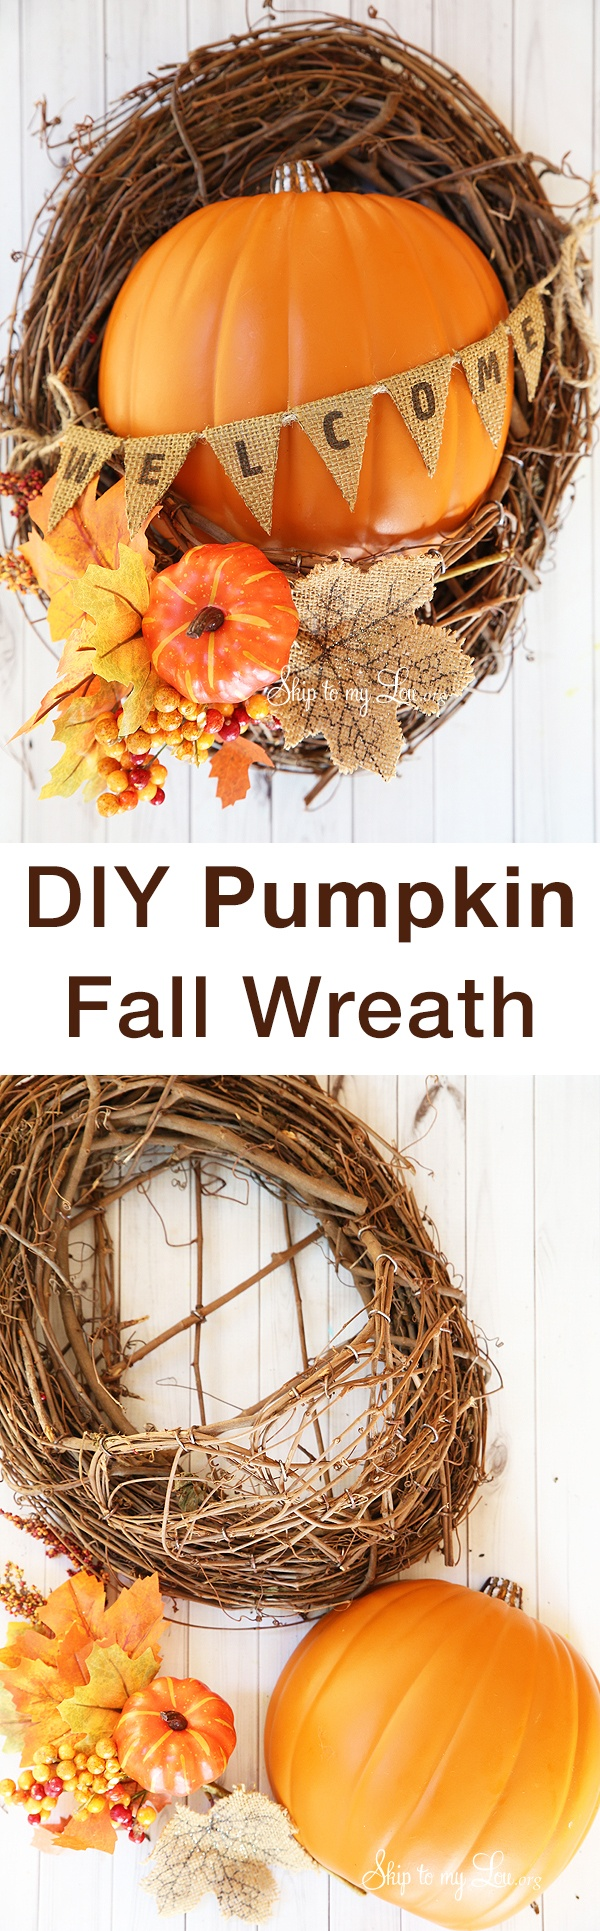 DIY Pumpkin Fall Wreath